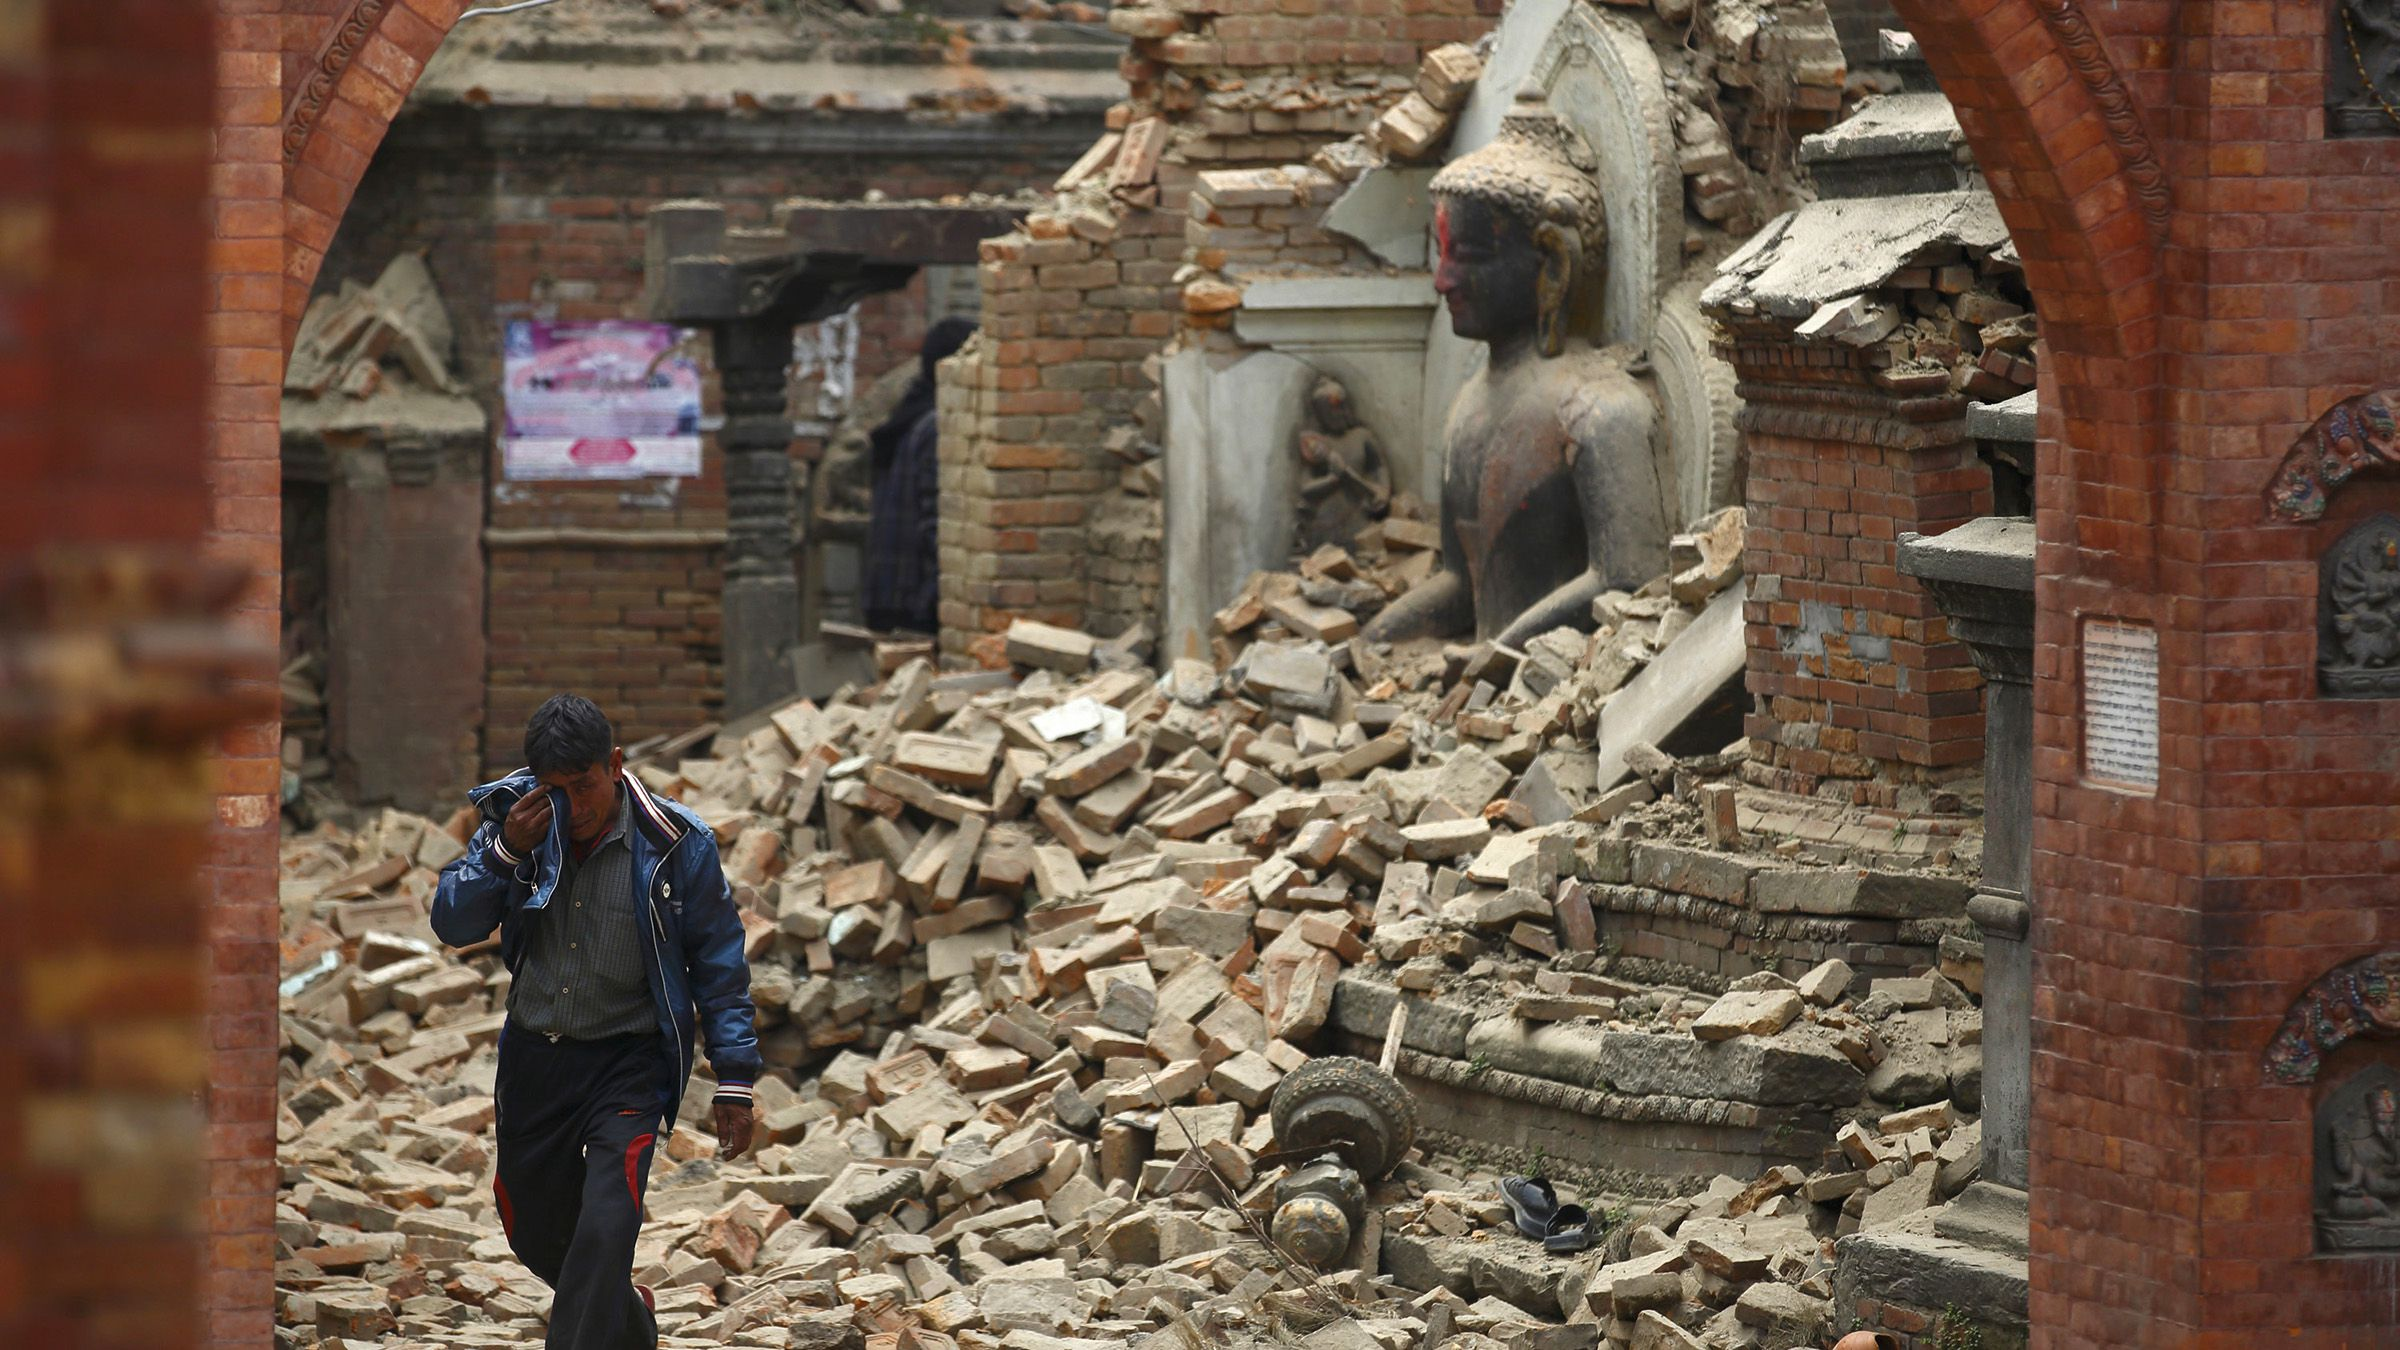 A man cries as he walks on the street while passing through a damaged statue of Lord Buddha a day after an earthquake in Bhaktapur, Nepal April 26, 2015. Rescuers dug with their bare hands and bodies piled up in Nepal on Sunday after the earthquake devastated the heavily crowded Kathmandu valley, killing at least 1,900, and triggered a deadly avalanche on Mount Everest.  REUTERS/Navesh Chitrakar      TPX IMAGES OF THE DAY      - RTX1AAS7